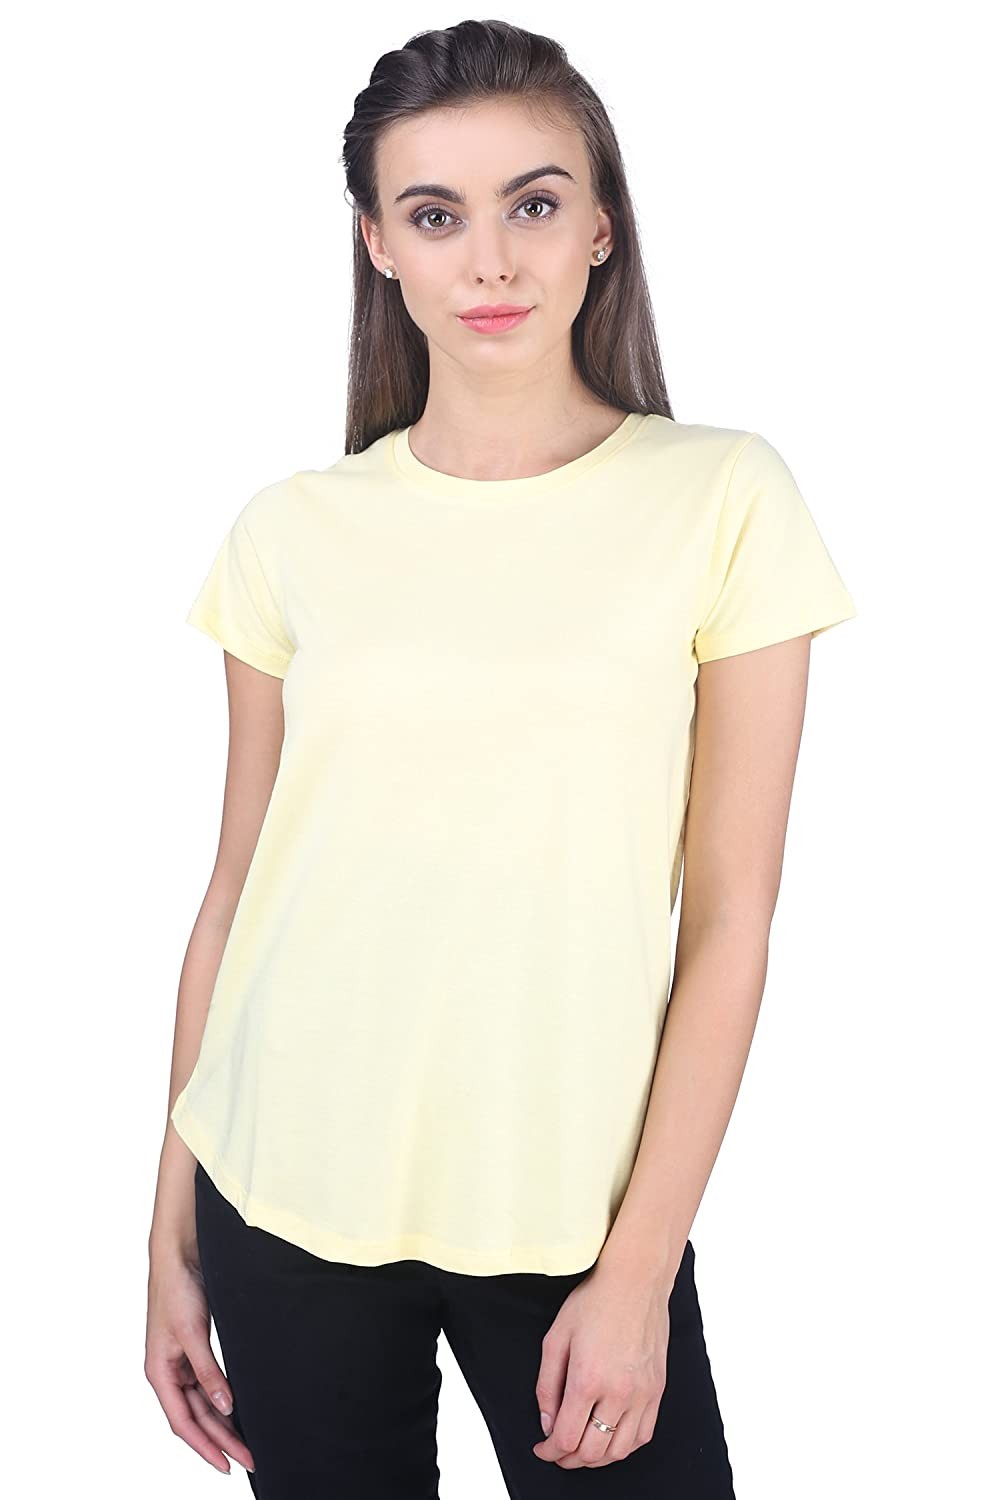 6f45fe19fa CottonWorld Women s T-Shirt (L-Tshirt-11670-17780-Yellow L Yellow Large)   Amazon.in  Clothing   Accessories